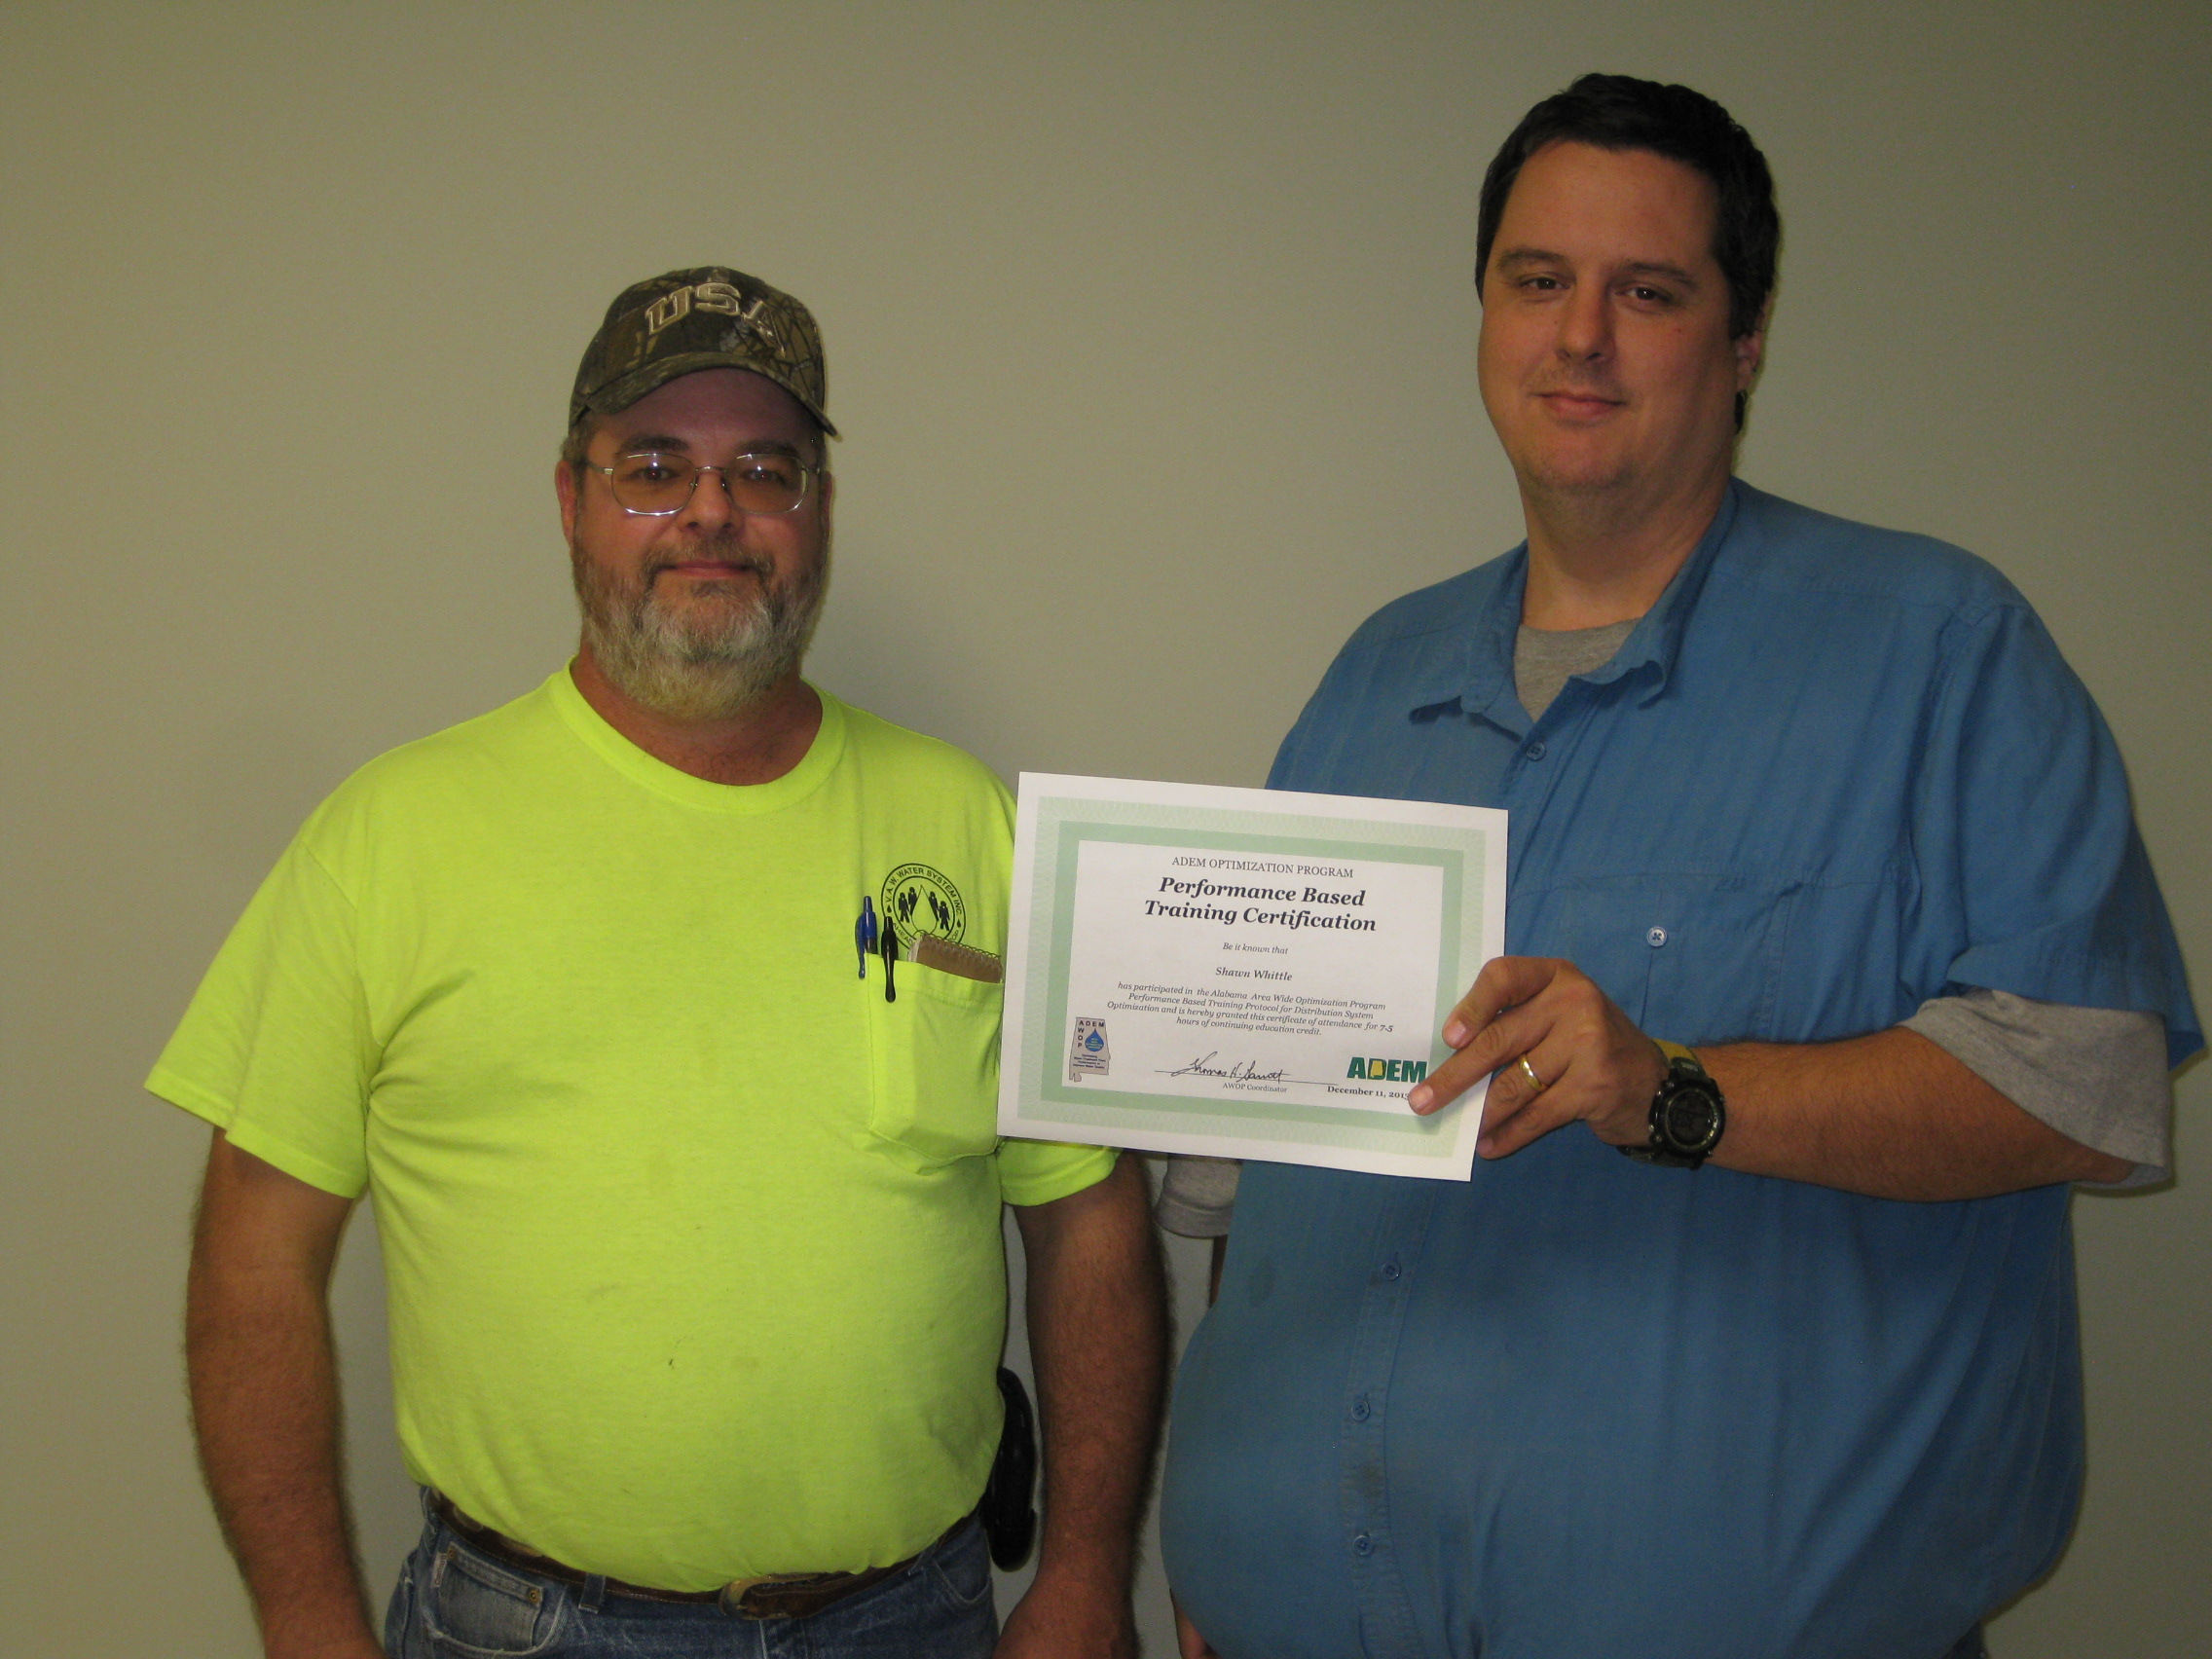 Distribution system performance based training in alabama shawn whittle vaw water receiving a certificate of recognition from william mcclimans alabama xflitez Choice Image